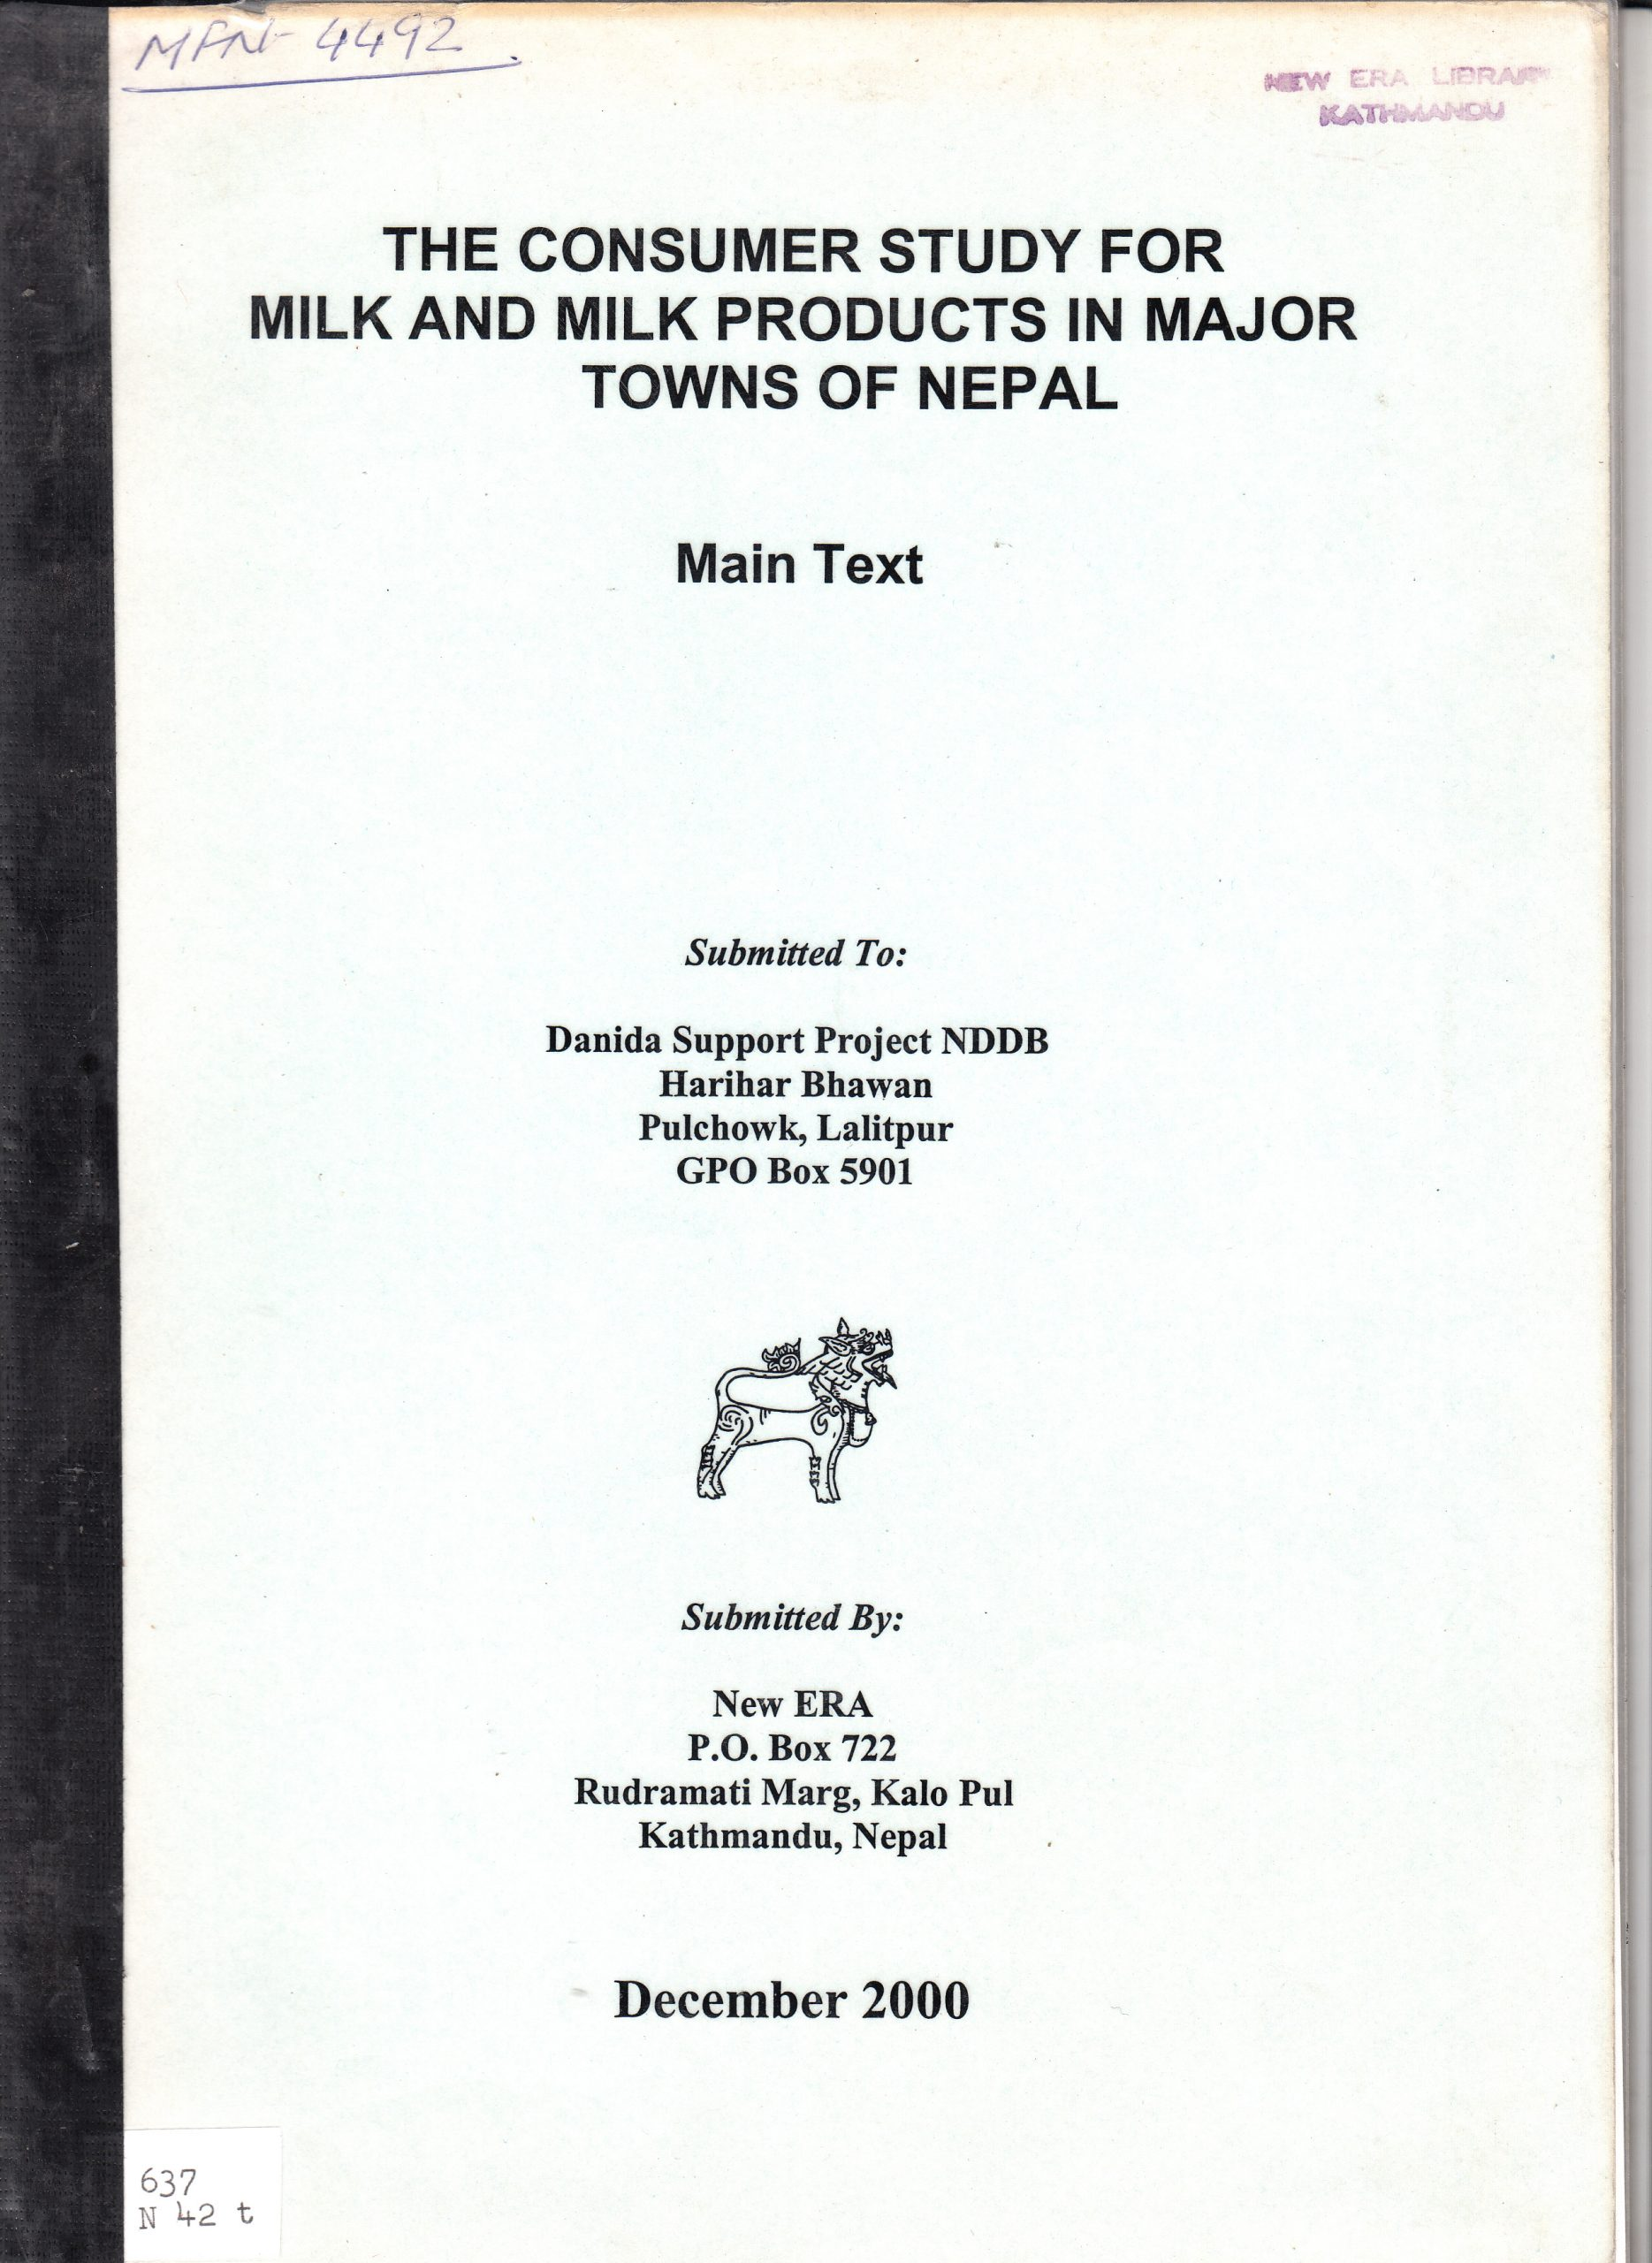 The Consumer Study for the Milk and Milk Products Market in the Major Towns of Nepal